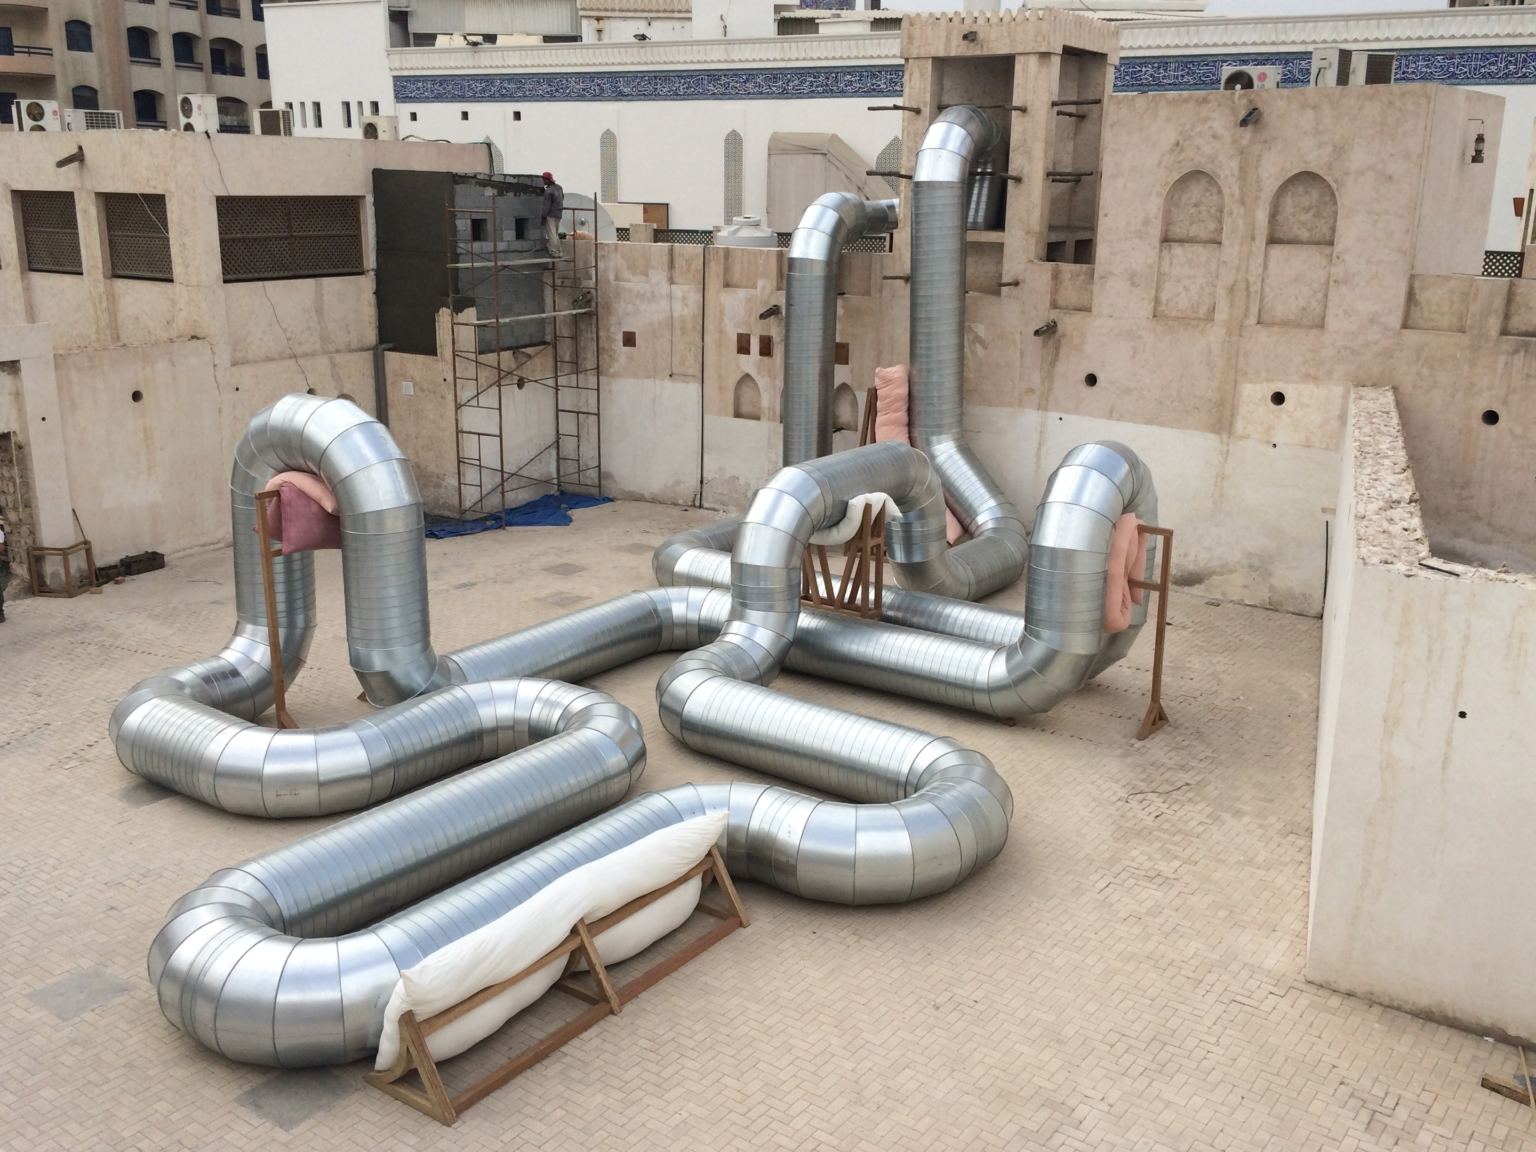 Holly Hendry, Homeostasis, 2014. Installation view at Courtyard C, Sharjah Art Foundation. Courtesy; artist.